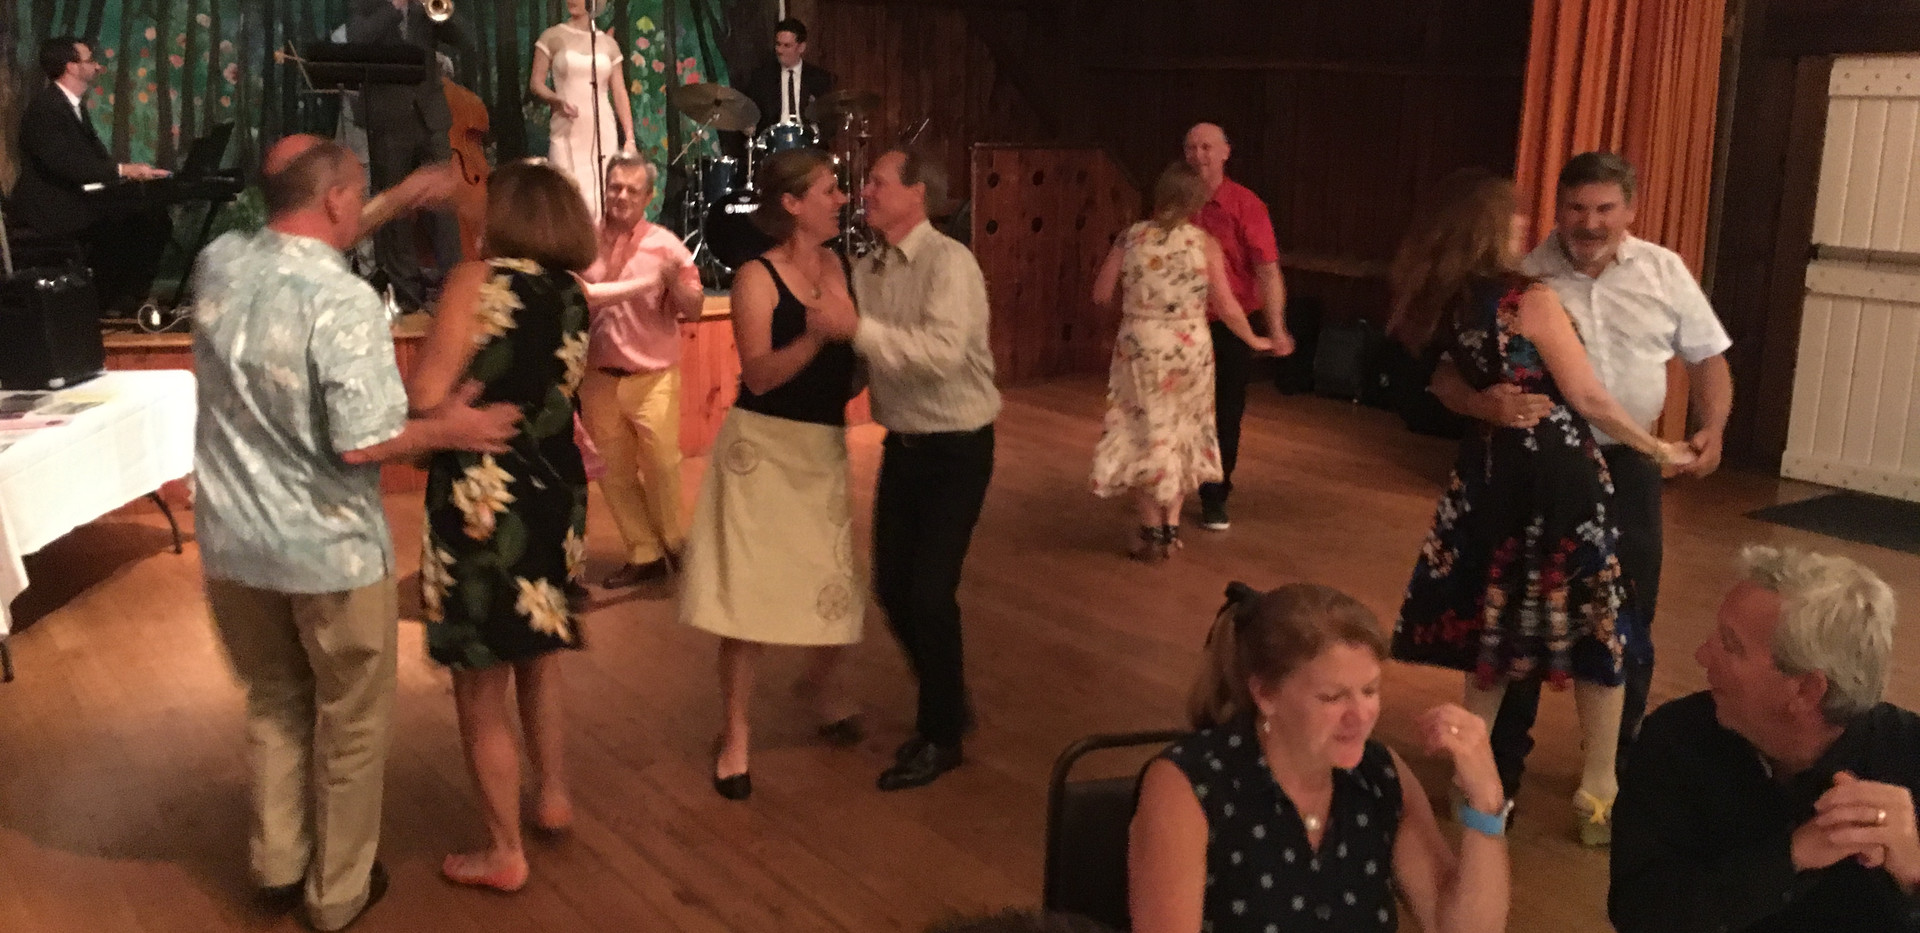 Dance Hosting at Quaker Hill Country Club - 7